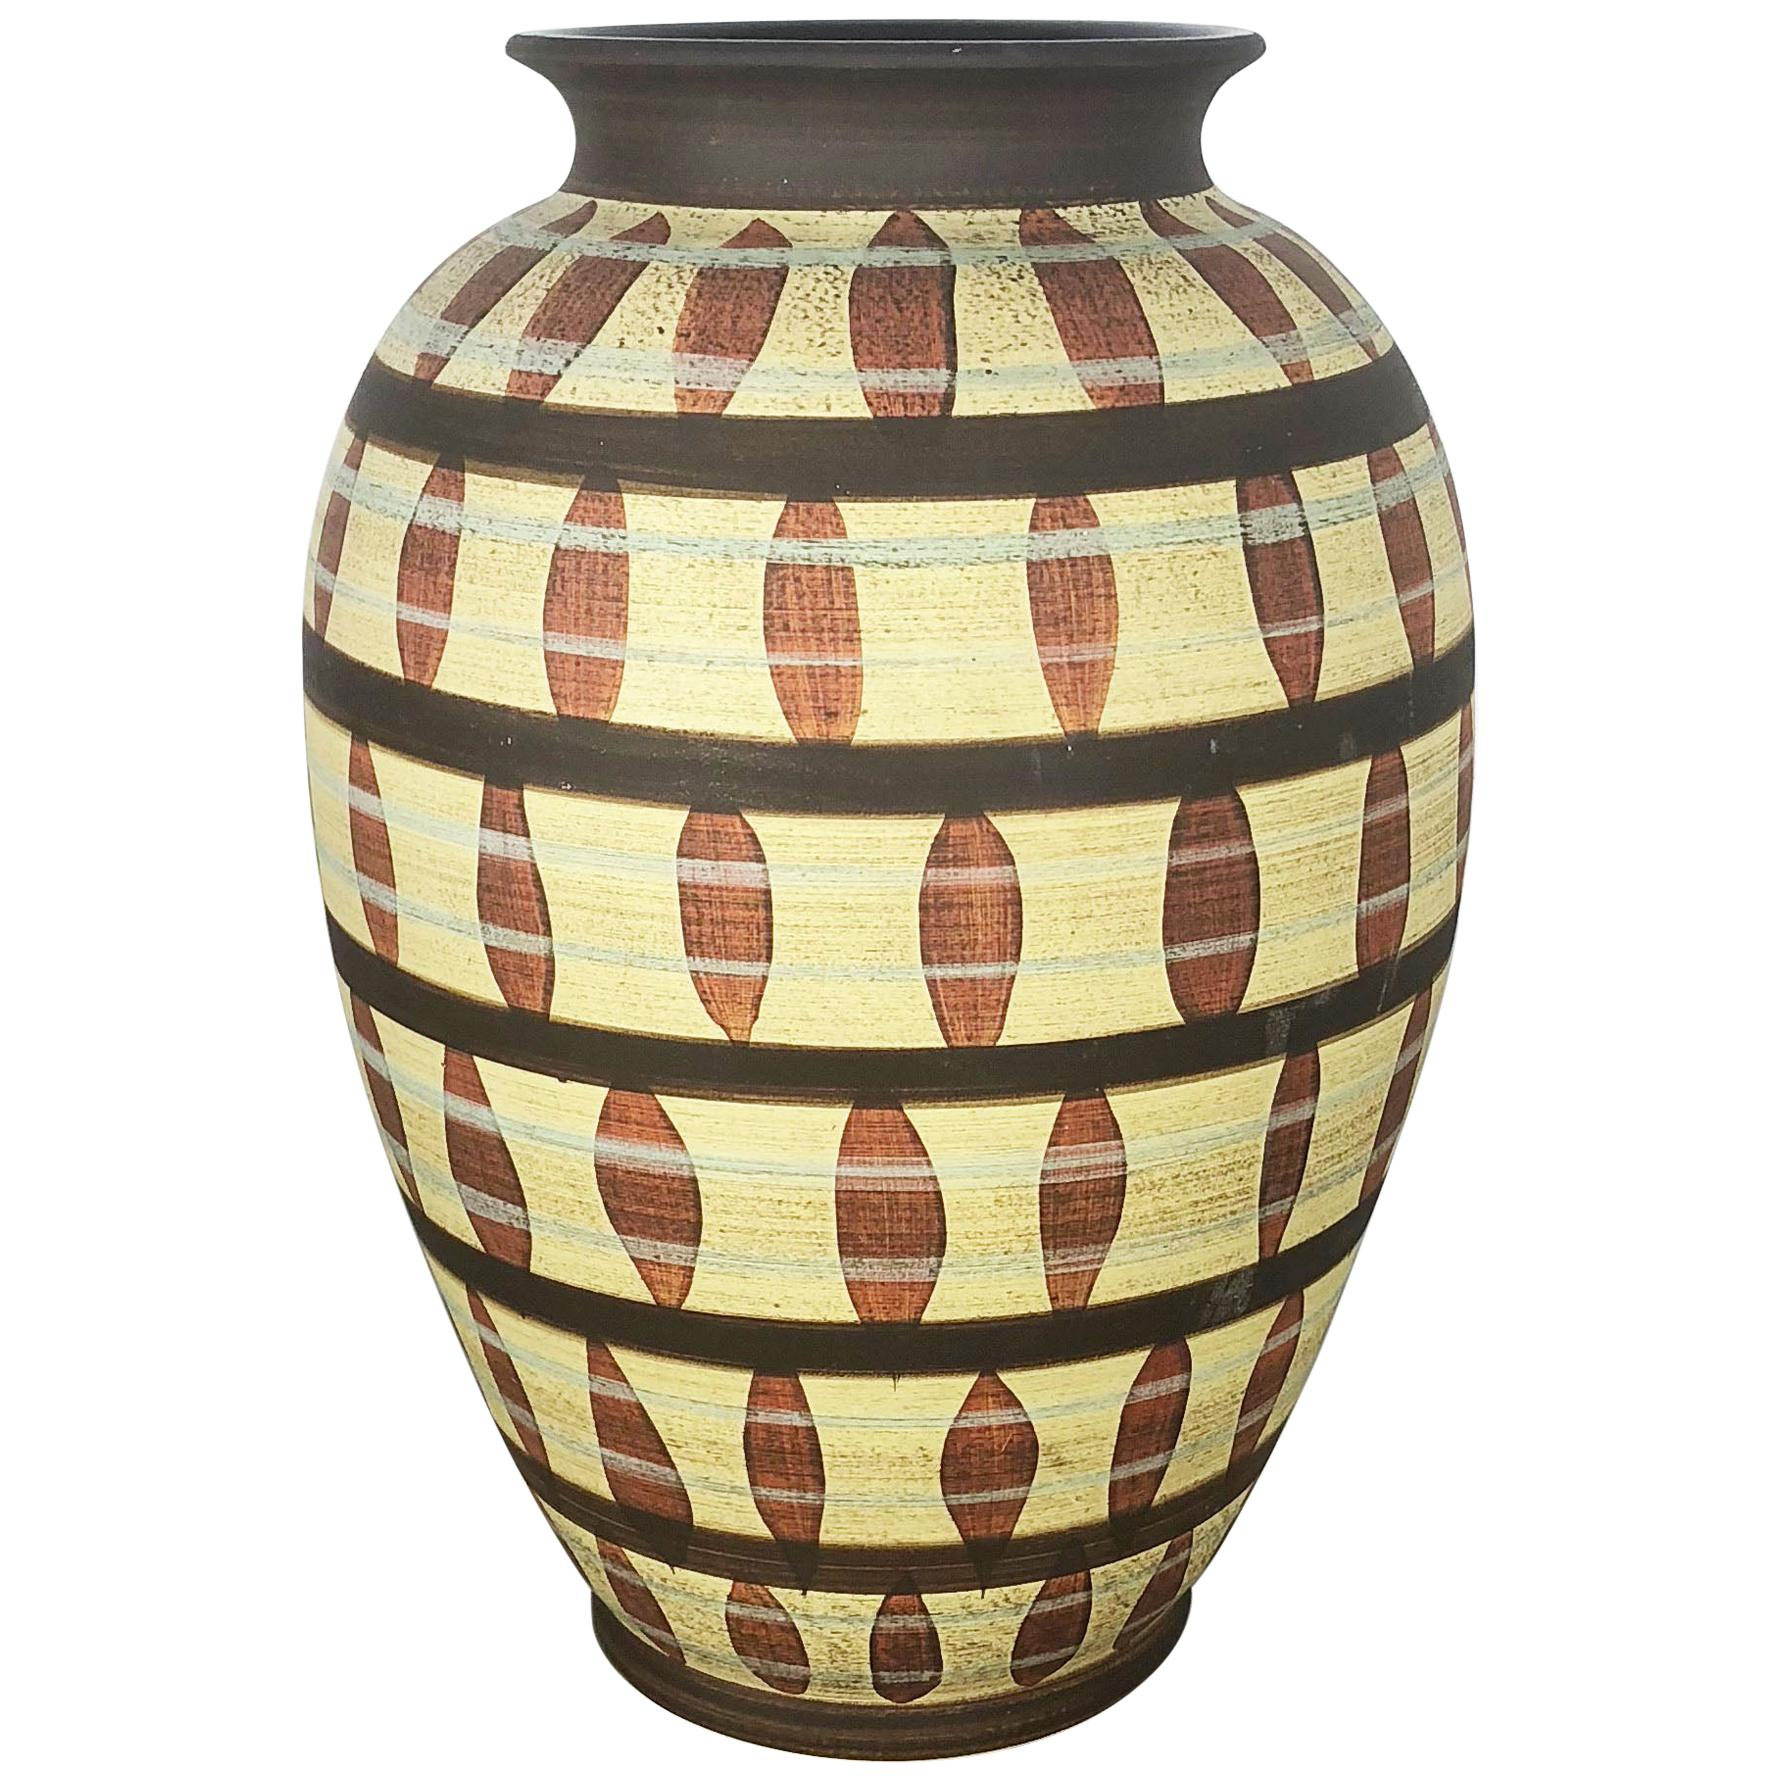 Vintage Abstract Ceramic Pottery Vase by Simon Peter Gerz, Germany, 1950s